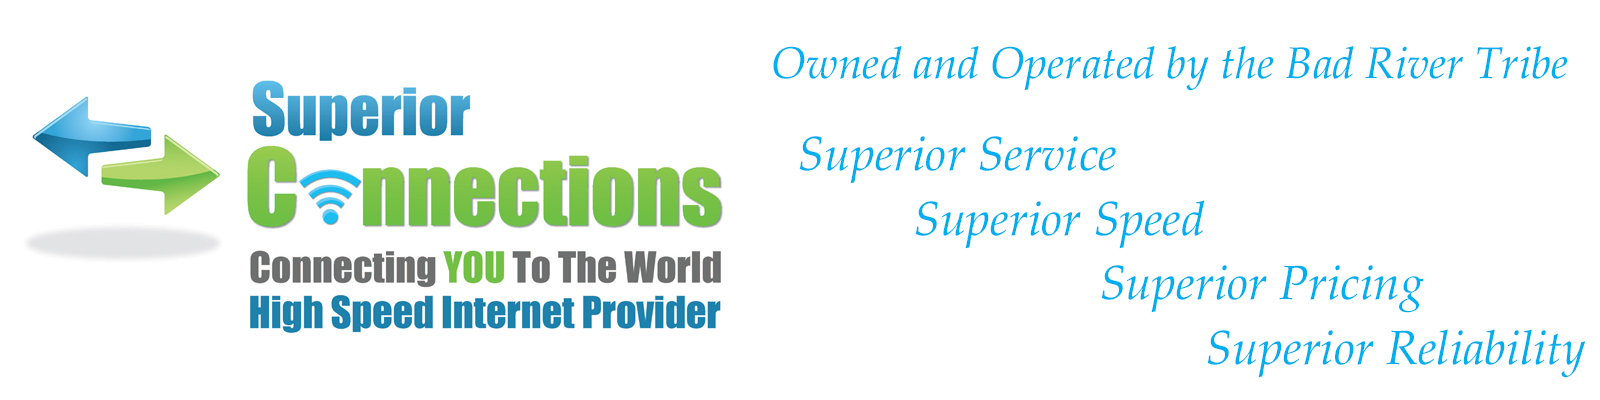 superiorconnections